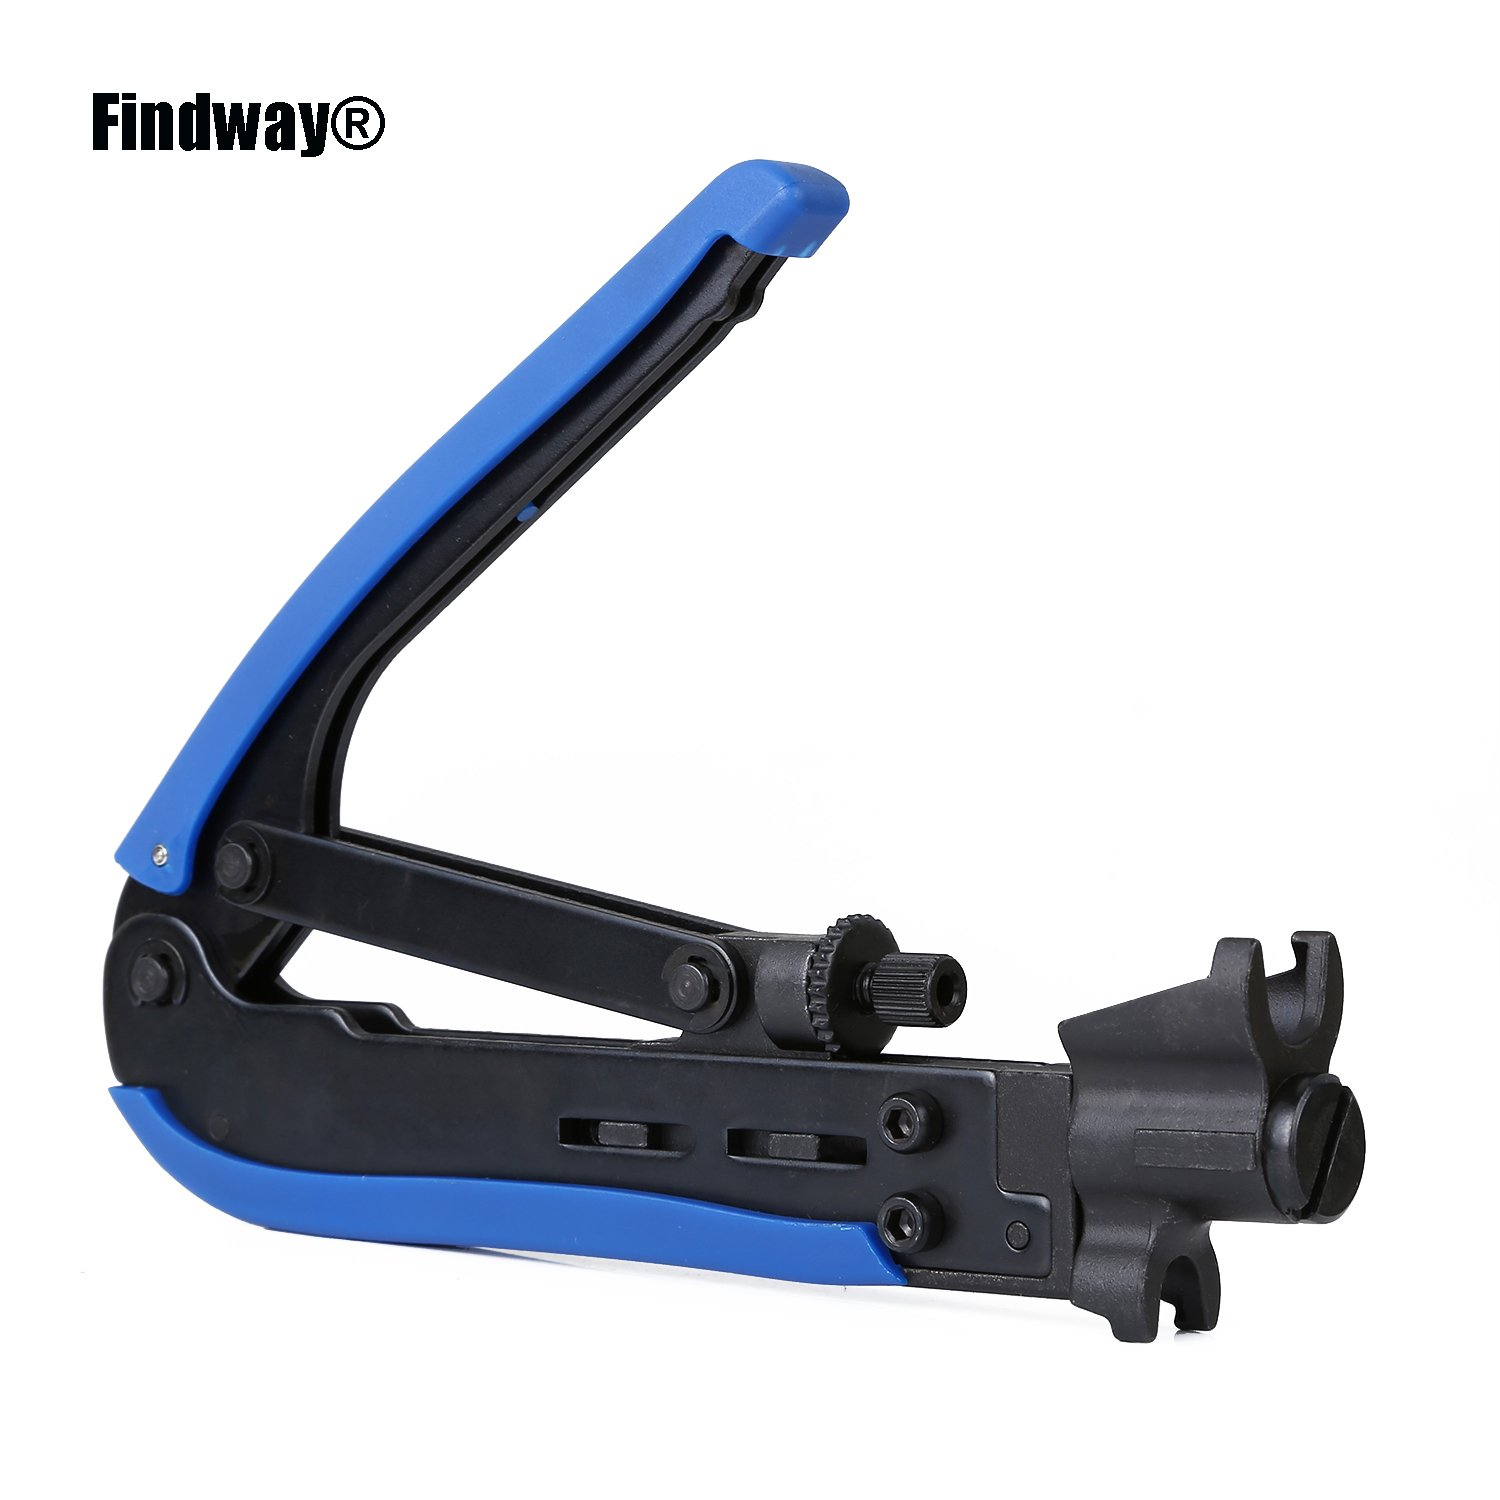 Findway RG59 RG6 RG11 Cable F-Connector Compression Tool Crimpers Steel Adjustable Compression Tool-Hardened Steel Construction With Black Oxide Finished